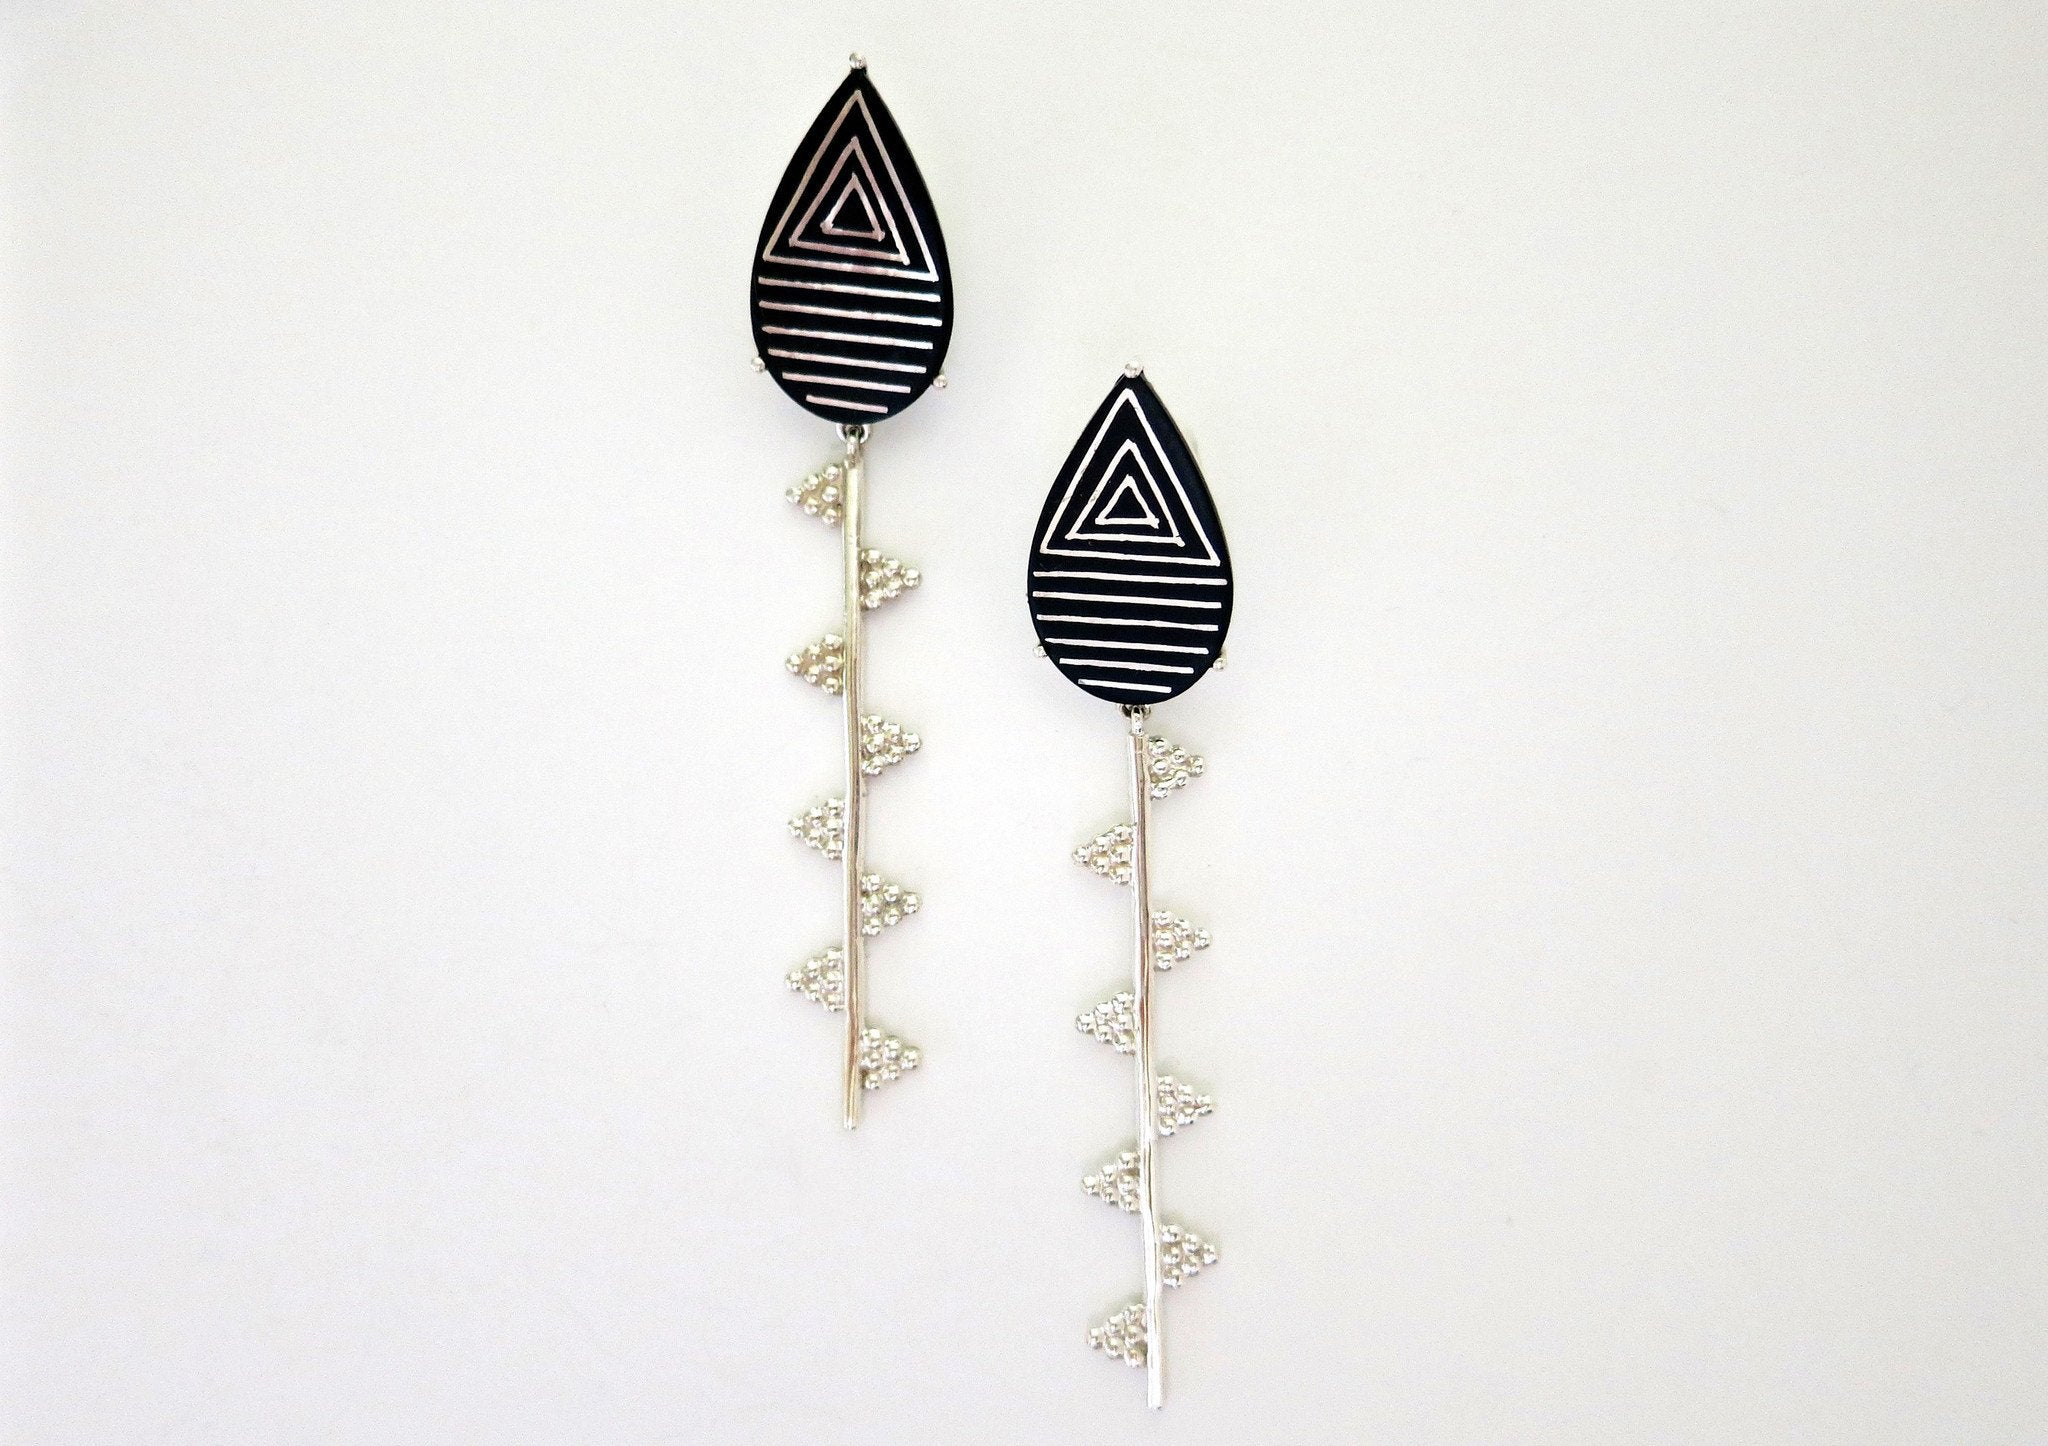 Exquisite, sleek, long Bidri earrings - Craft Stories Handmade, contemporary, personal and home accessories. Designed in California. Handcrafted in India. Traditional craftsmanship meets modern aesthetics. Sustainable design ethos, fair trade, conscious, artisanal jewelry and home decor. Objects with a story. Unique and on-trend.